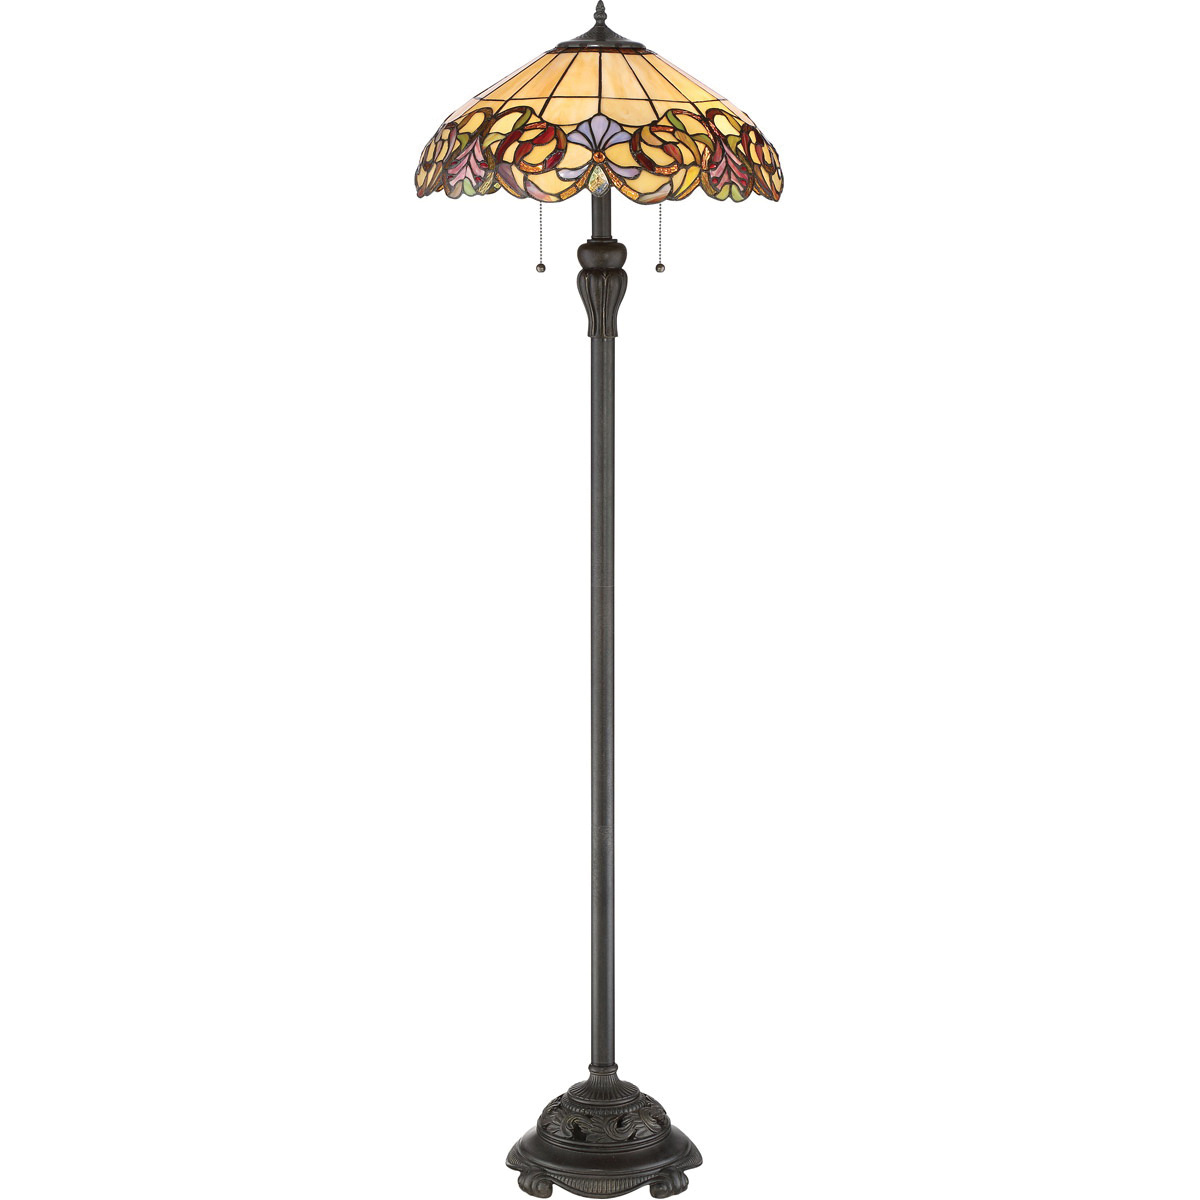 Floor Lamps Quoizel Web that you must See @house2homegoods.net